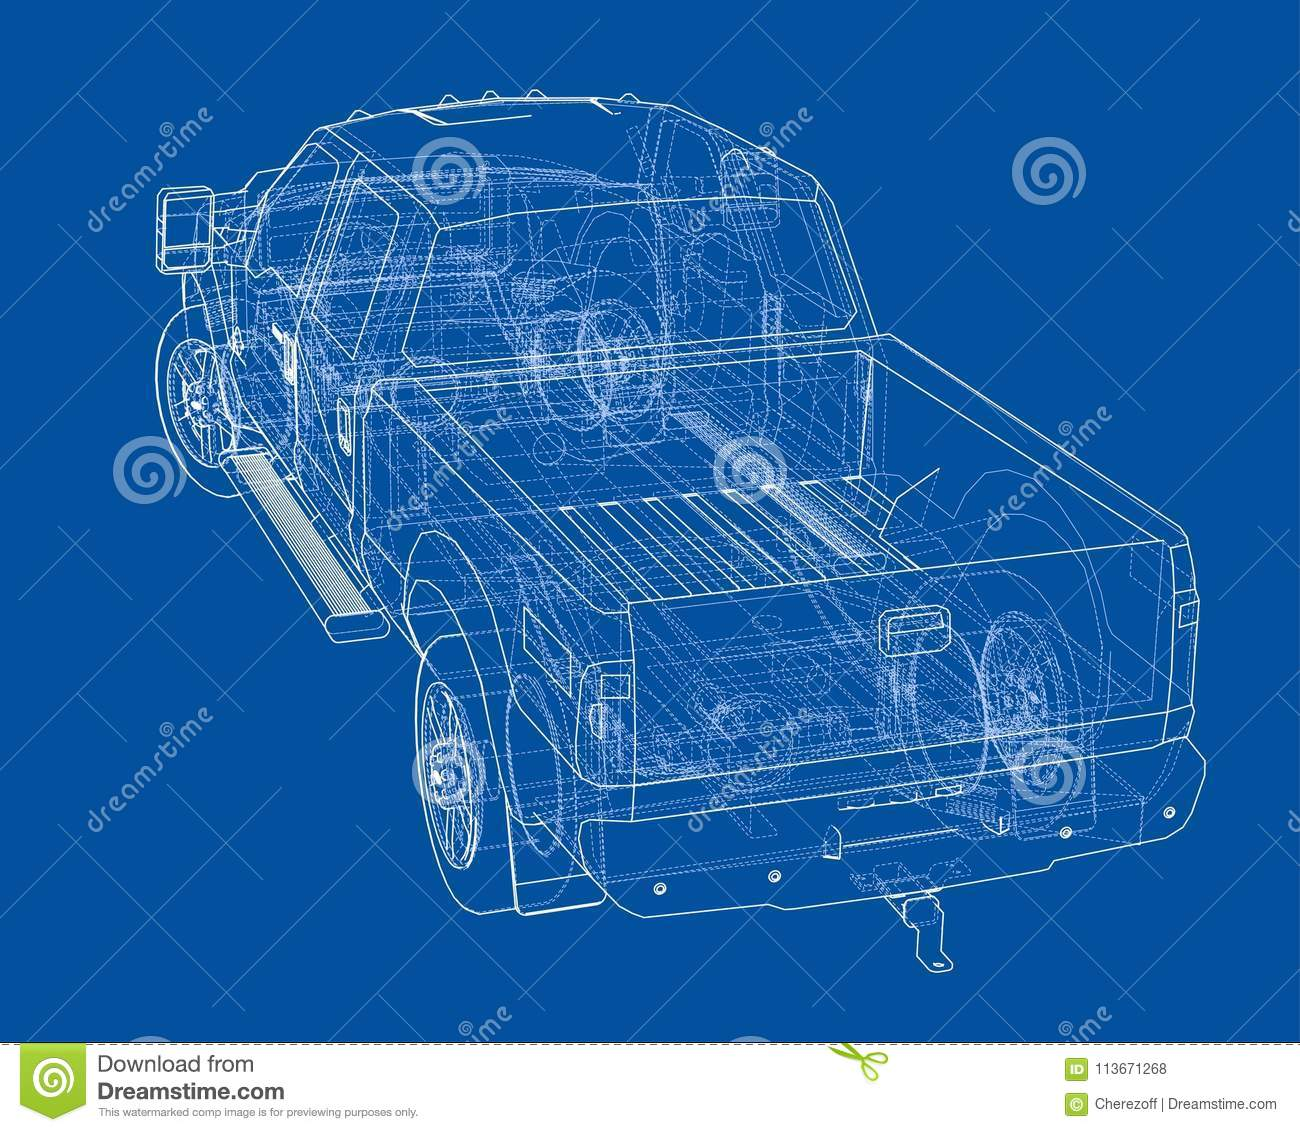 Car SUV drawing outline stock illustration. Illustration of simple ...